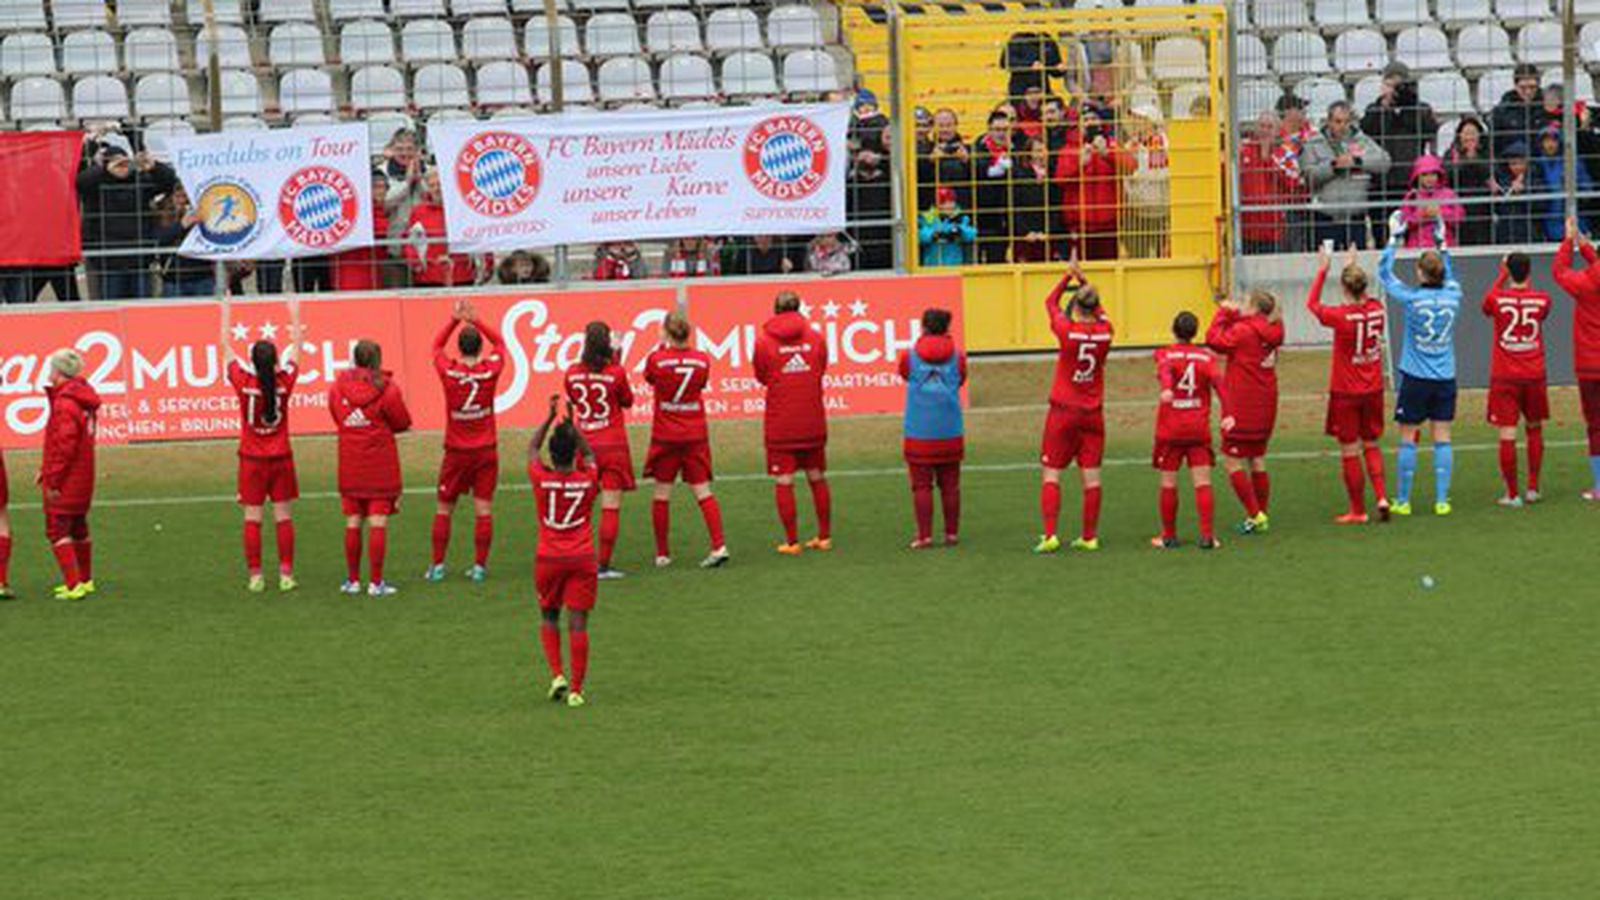 bayern m 252 nchen frauen 1 bundesliga frauen bayern munich frauen return to winning ways bavarian 729